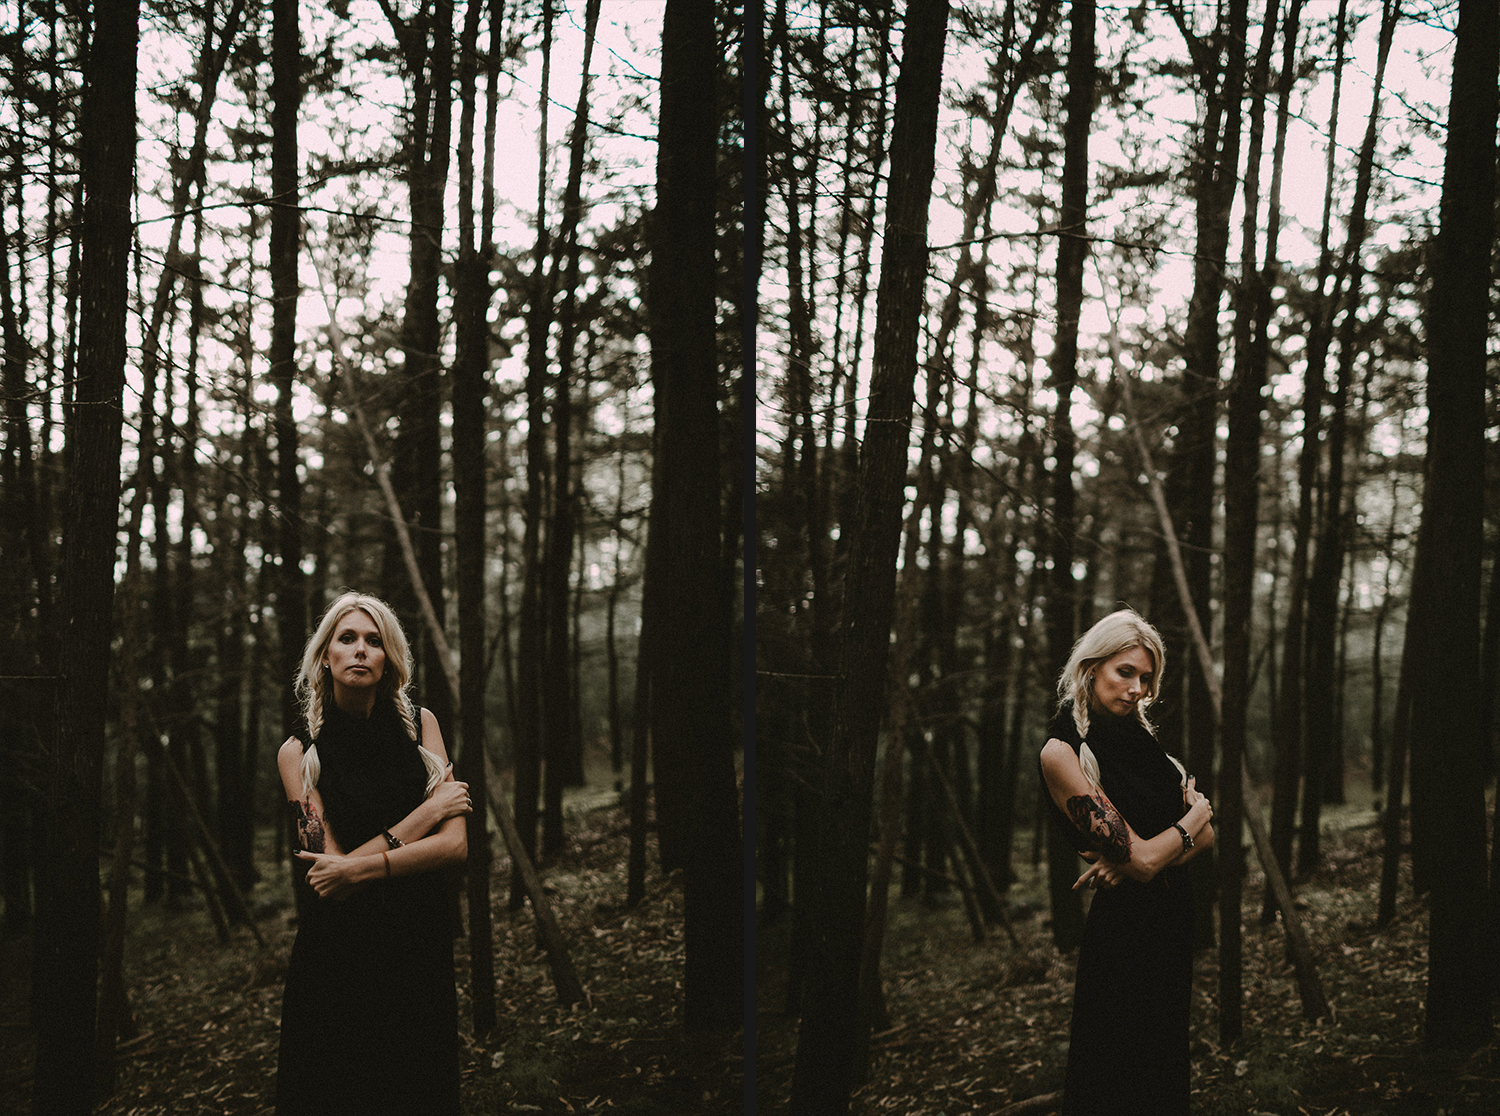 Image of a girl stands in the trees